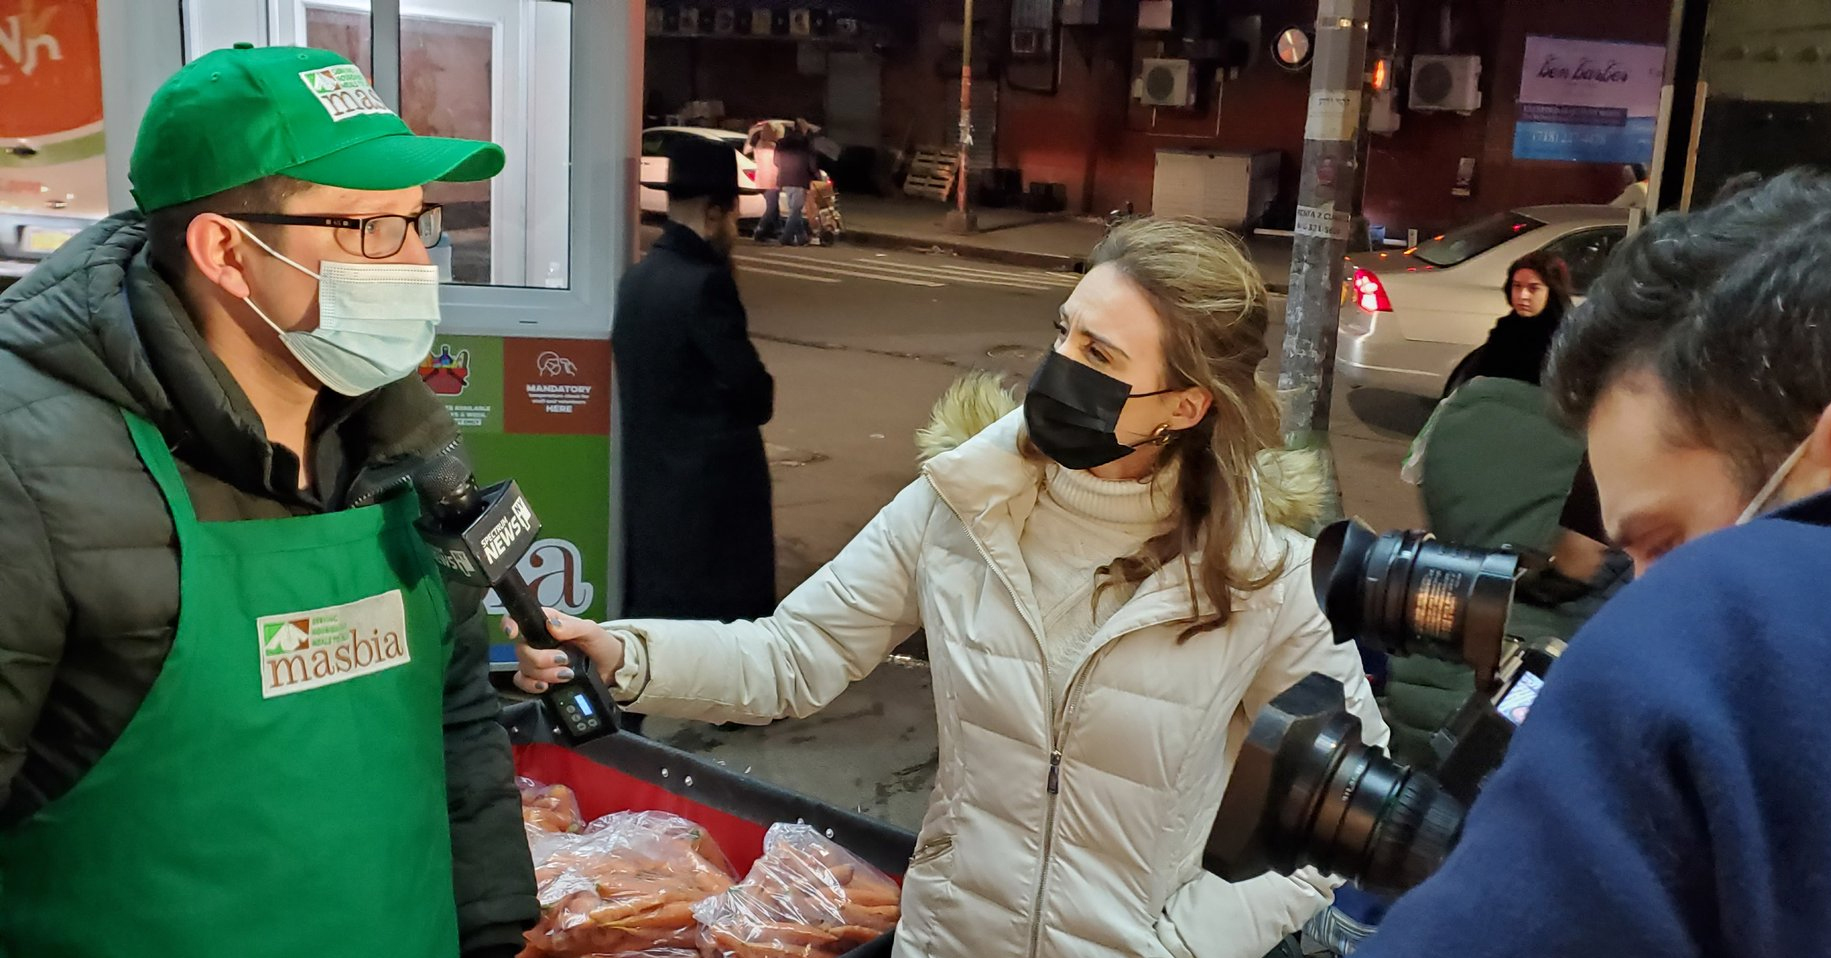 reported Shannan Ferry of NY1 at Masbia Boro Park reporting about soup kitchen workers are eligible for covid-19 vaccine